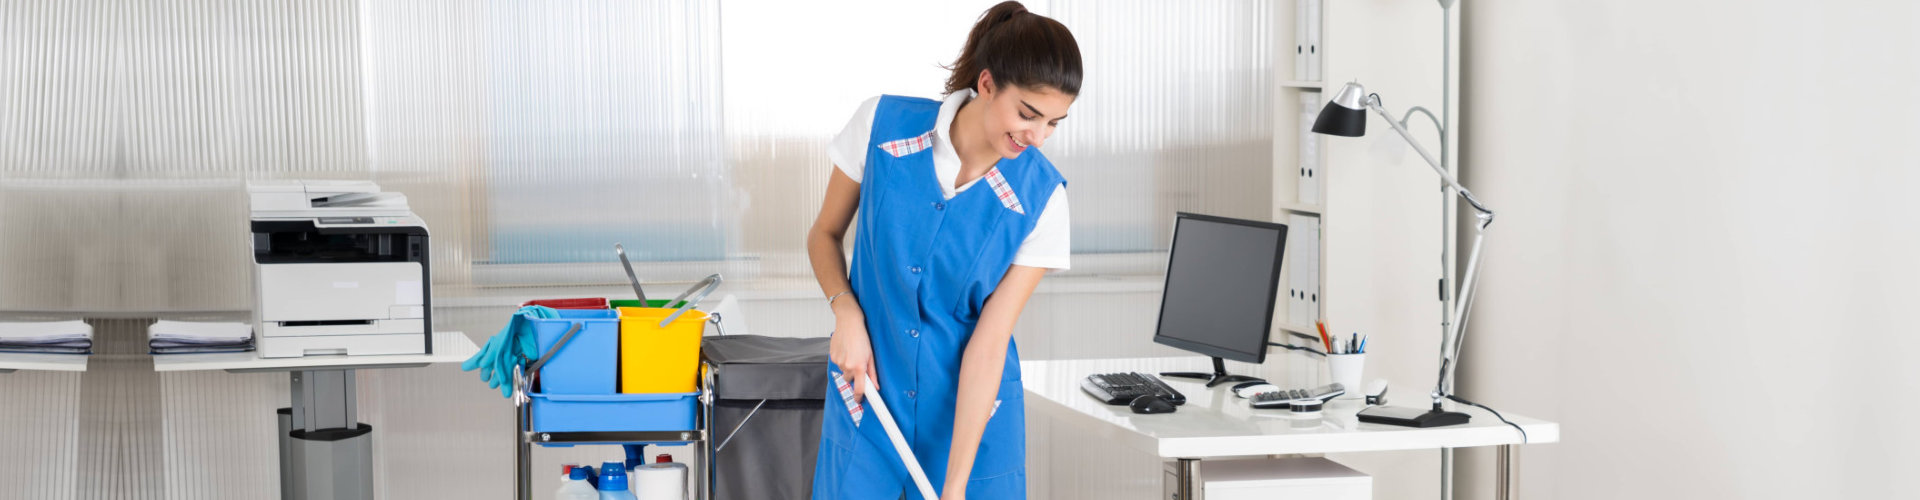 a woman cleaning the room